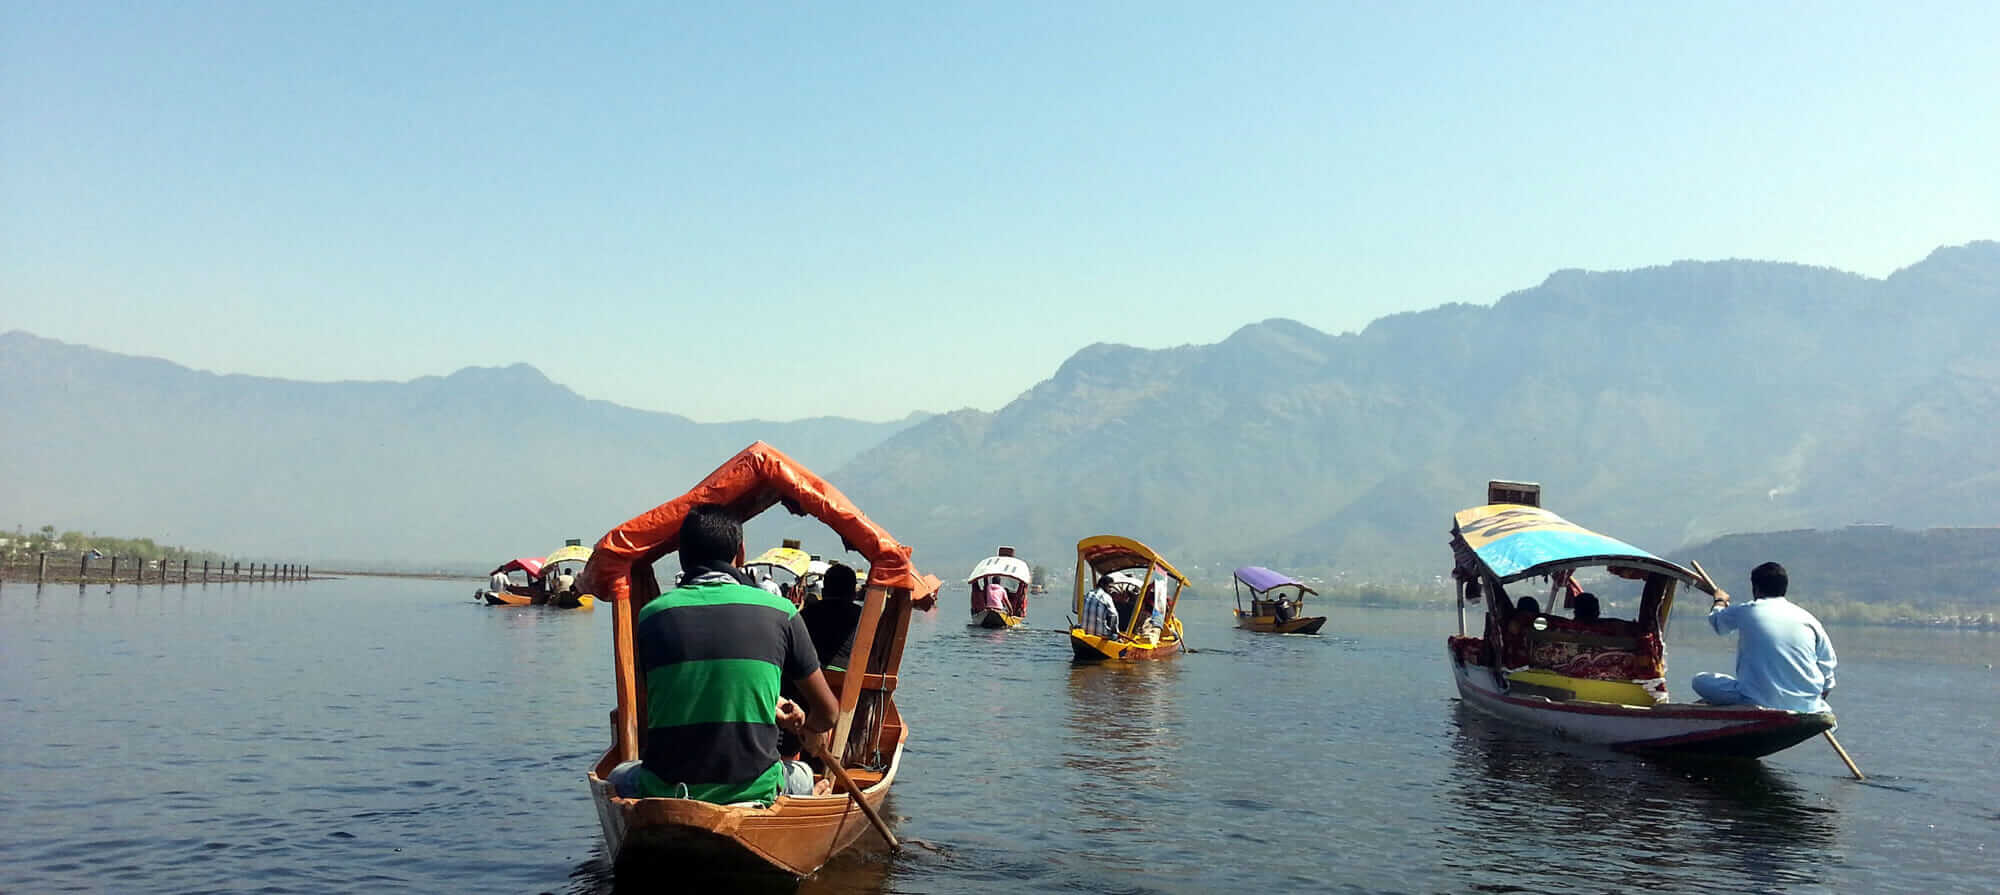 Jammu in Northern India.